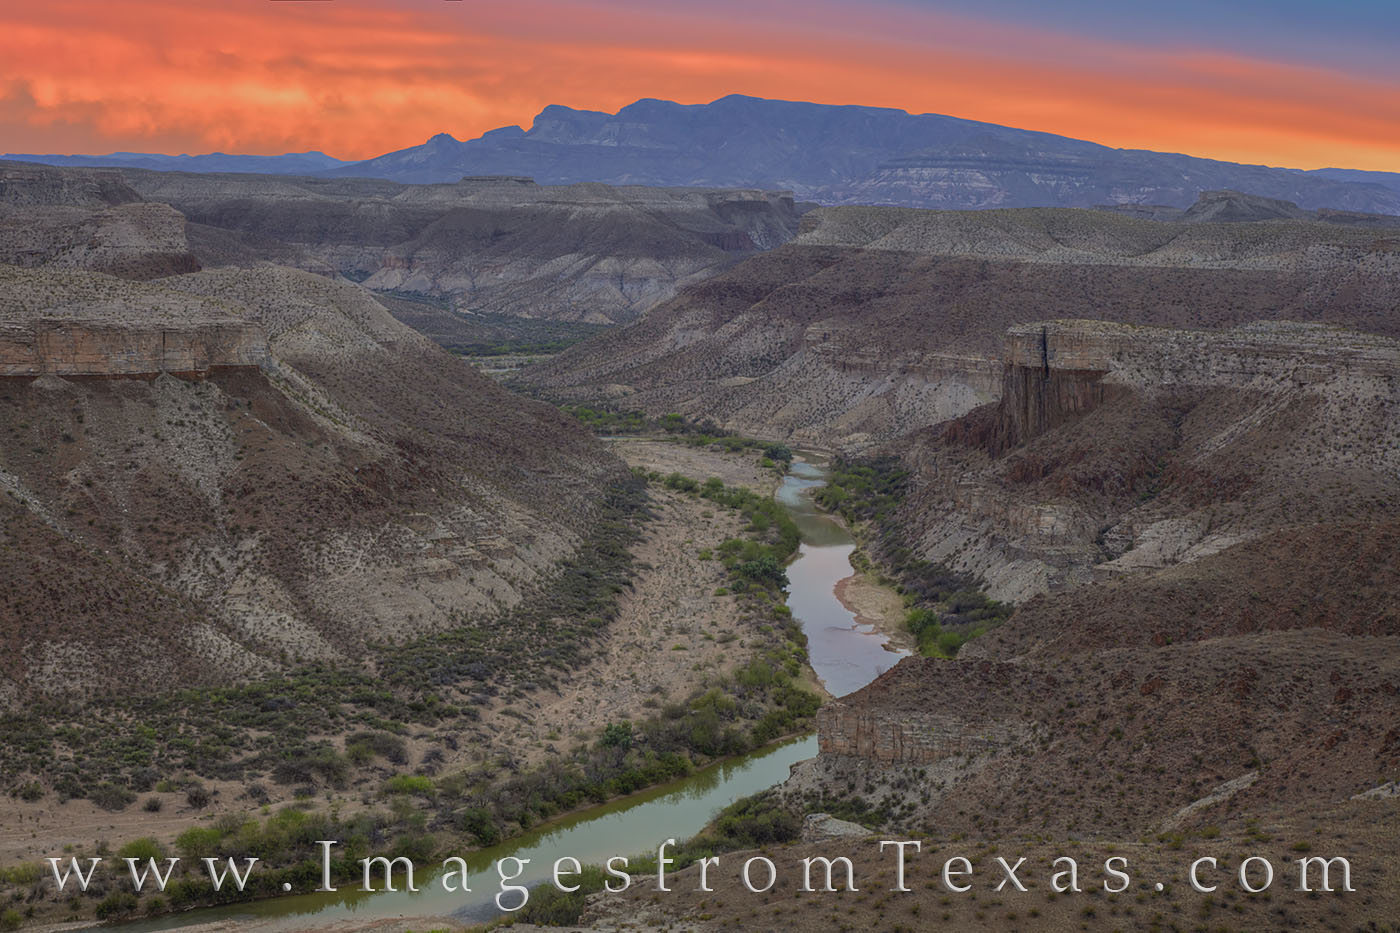 Mesa de anguila, rio grande, big bend, national park, sierra ponce, mesa, cliffs, orange, sunset, lajitas, hiking, remote, photo